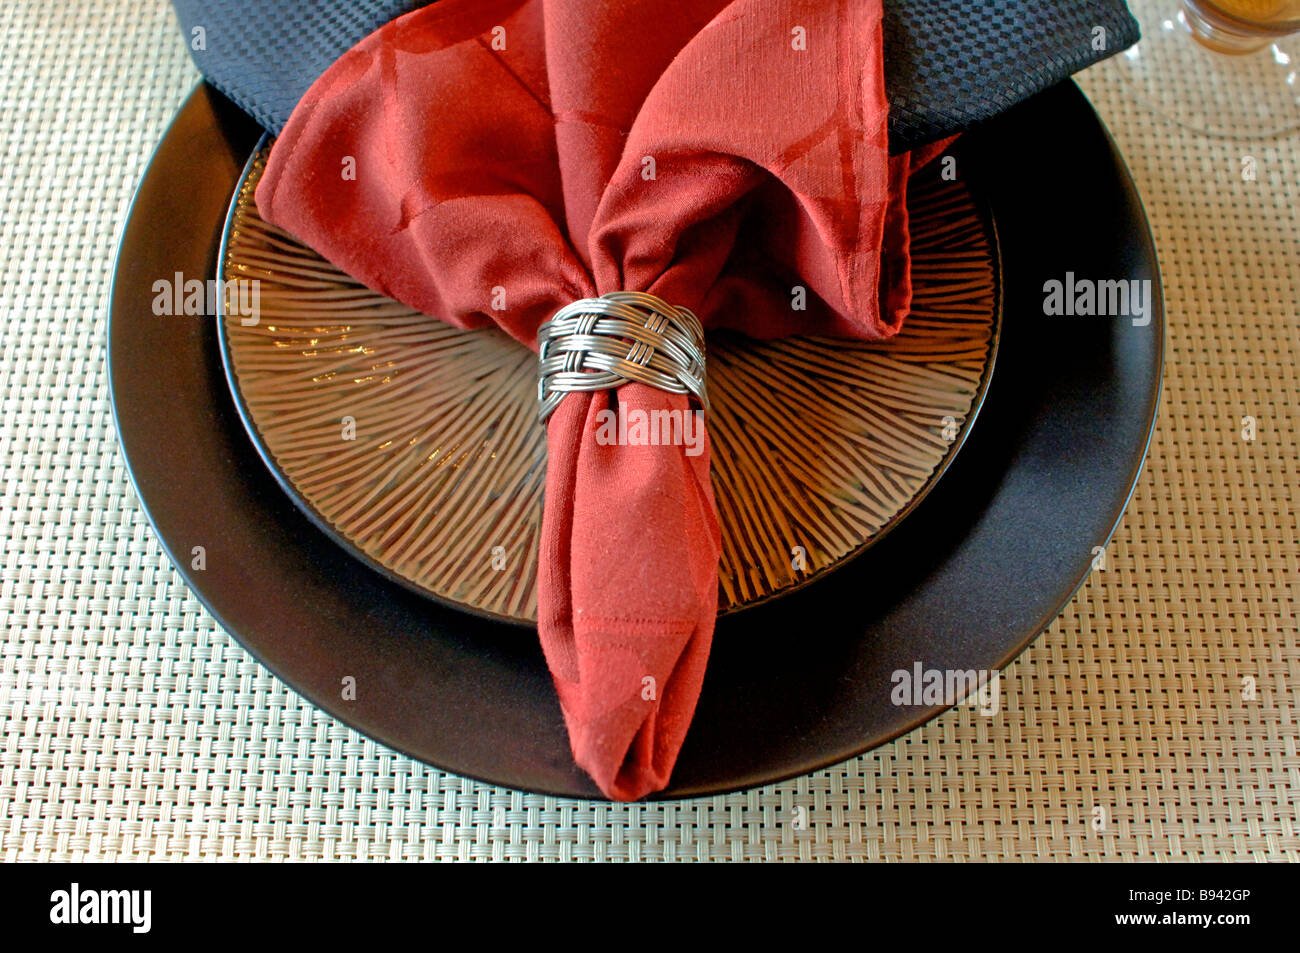 Elegant table setting with place mat cloth napkins and napkin ring & Elegant table setting with place mat cloth napkins and napkin ring ...